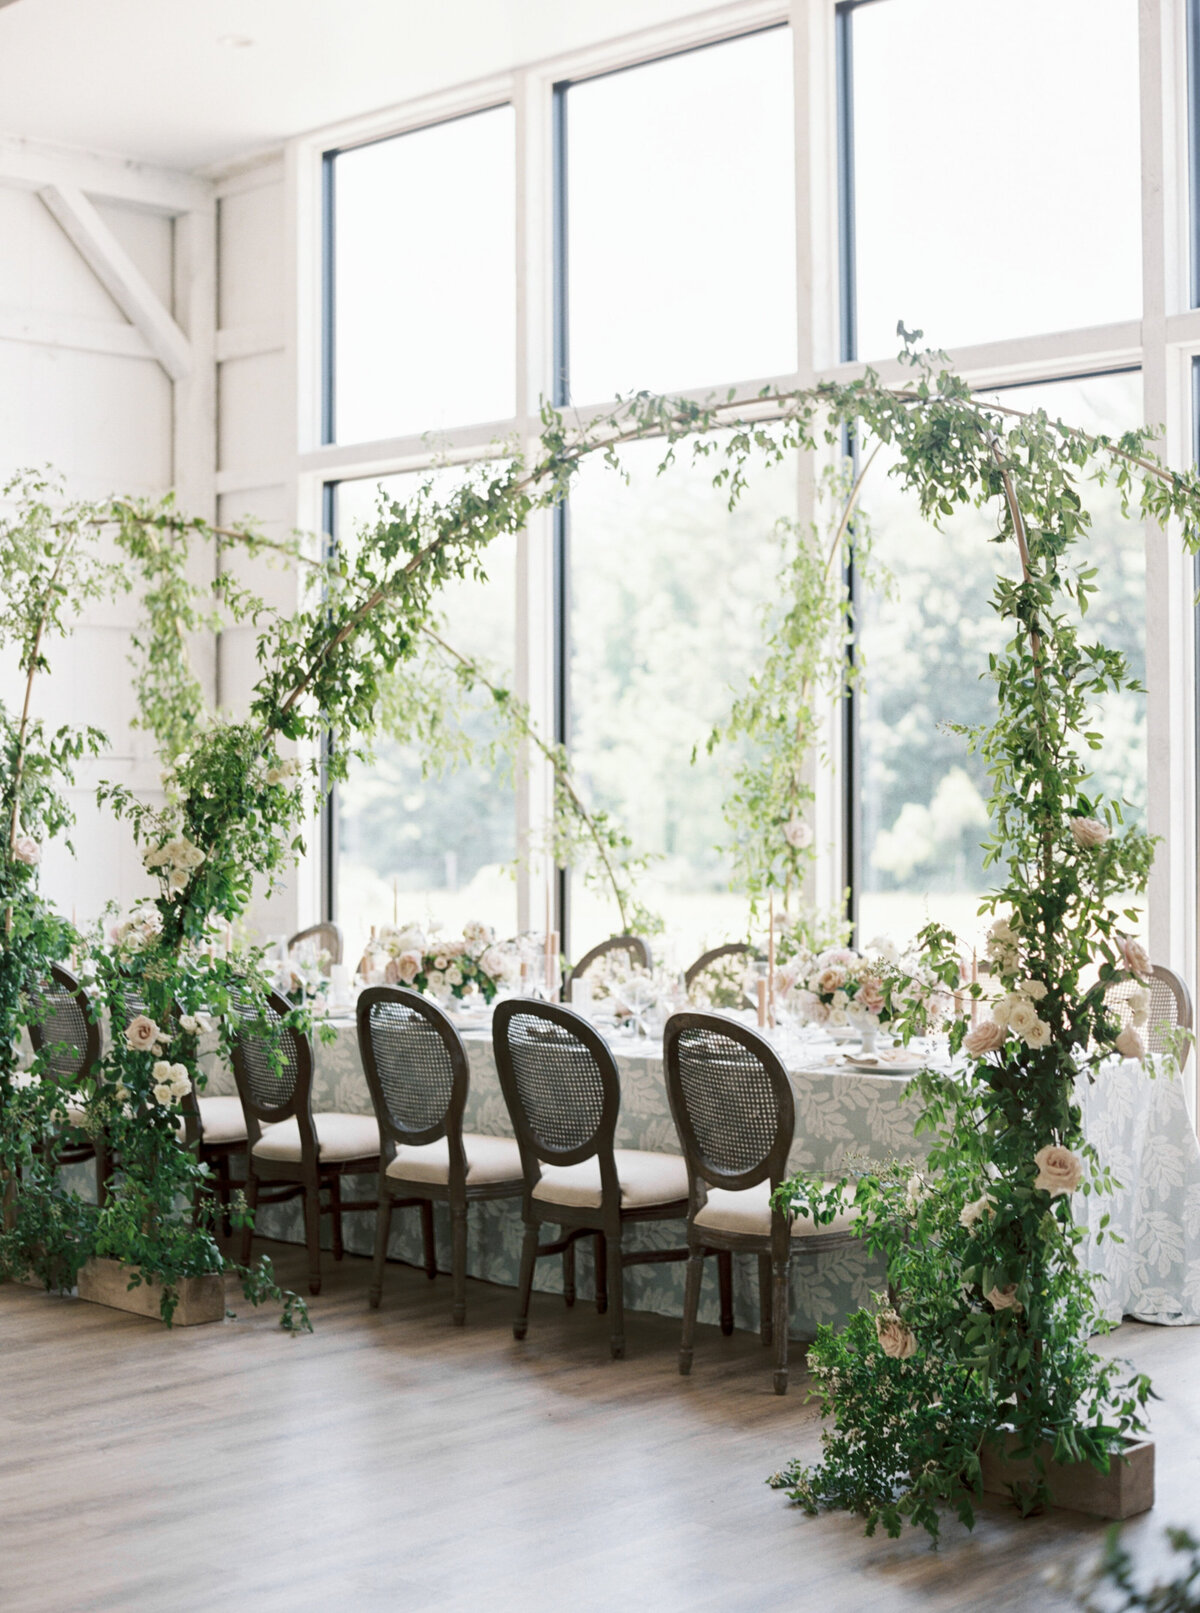 13 The Greenery Intimate Wedding with Always Yours Events 41